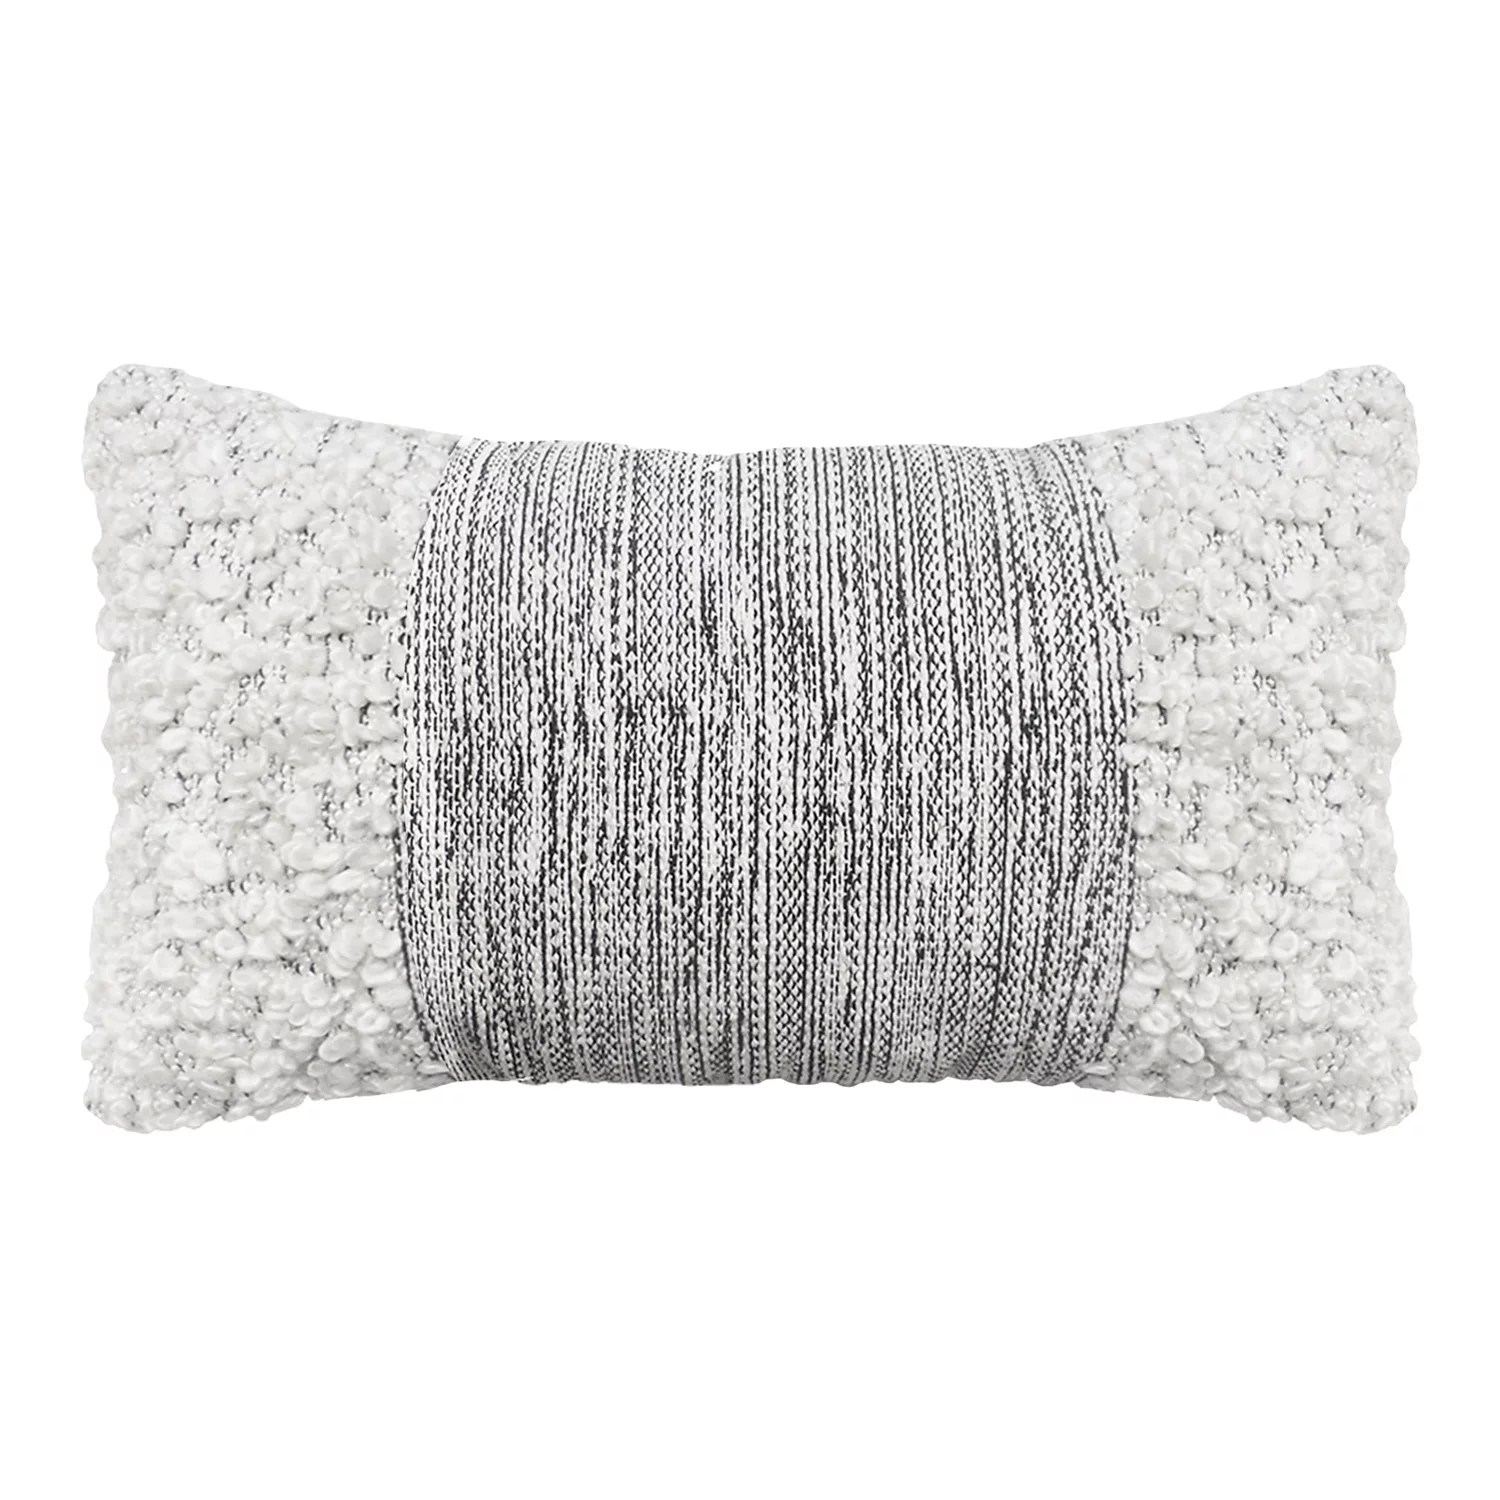 sonoma goods for life yarn textured throw pillow